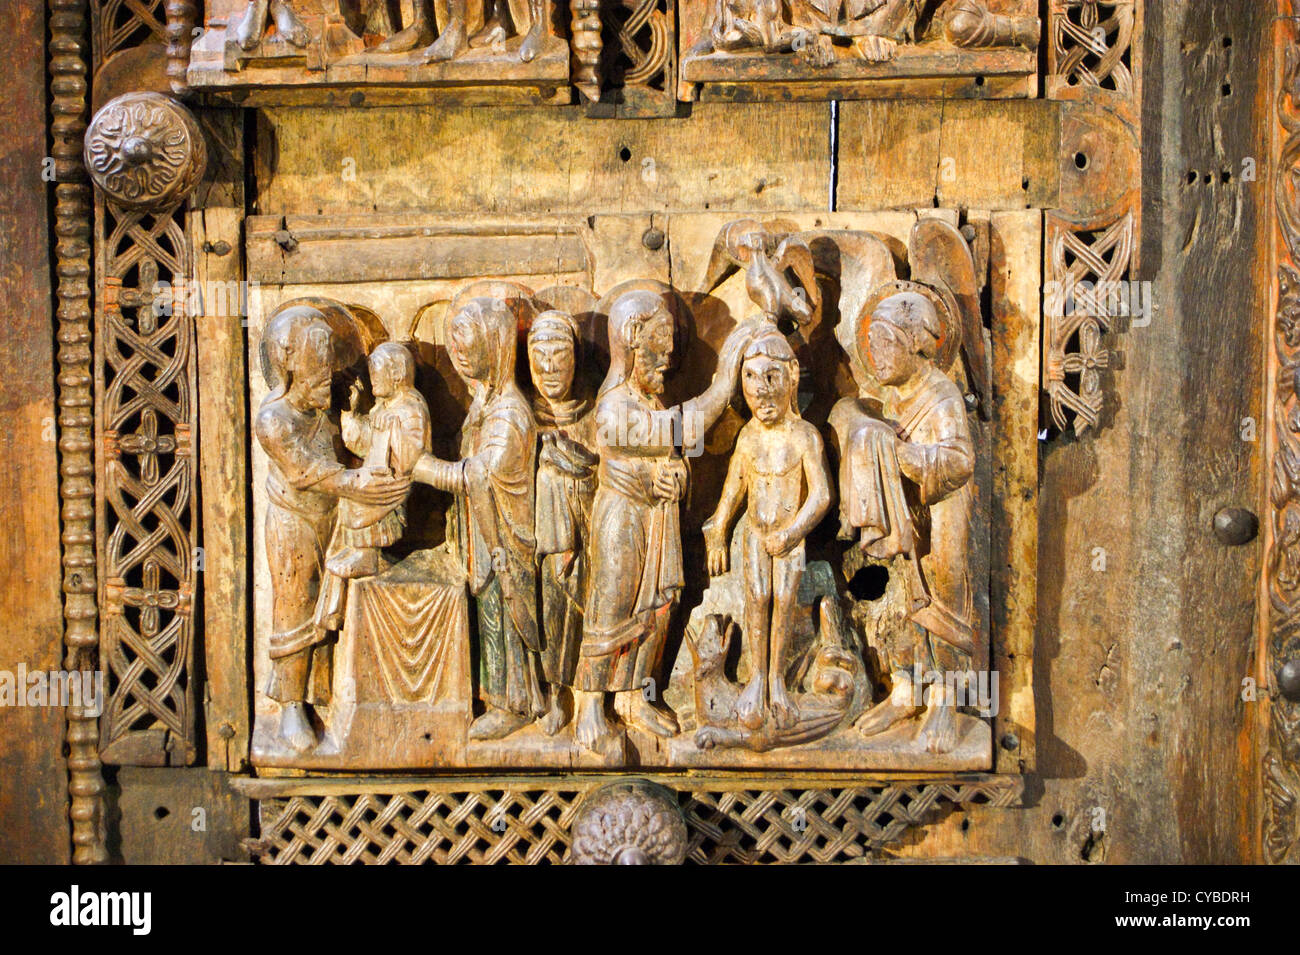 detail-of-romanesque-wooden-doors-1060-st-maria-im-kapitolkirche-church-CYBDRH.jpg